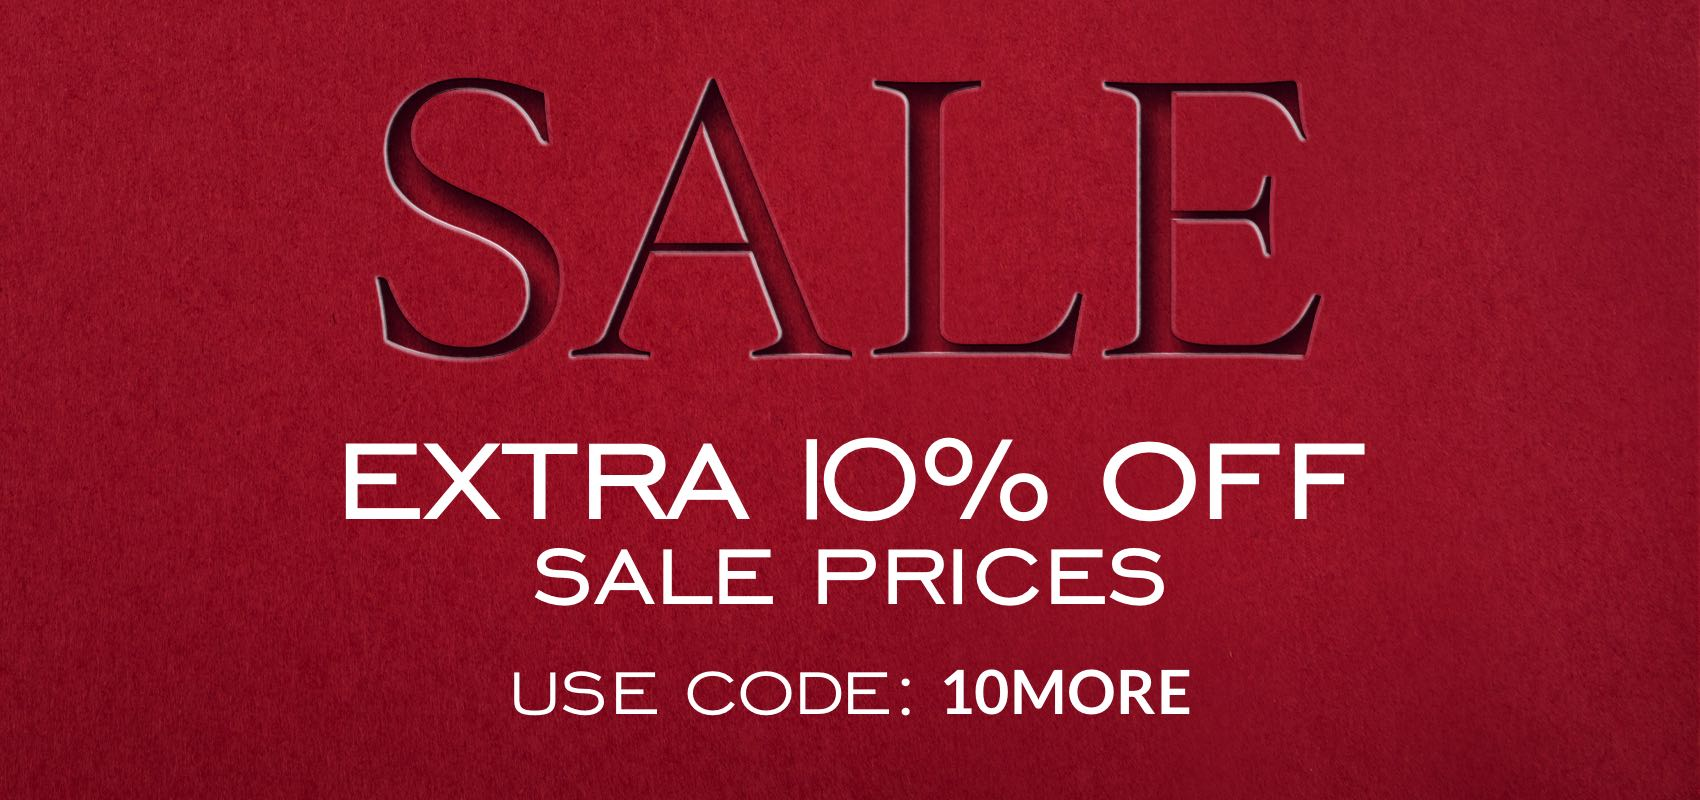 SALE extra 10% off sale prices use code 10MORE